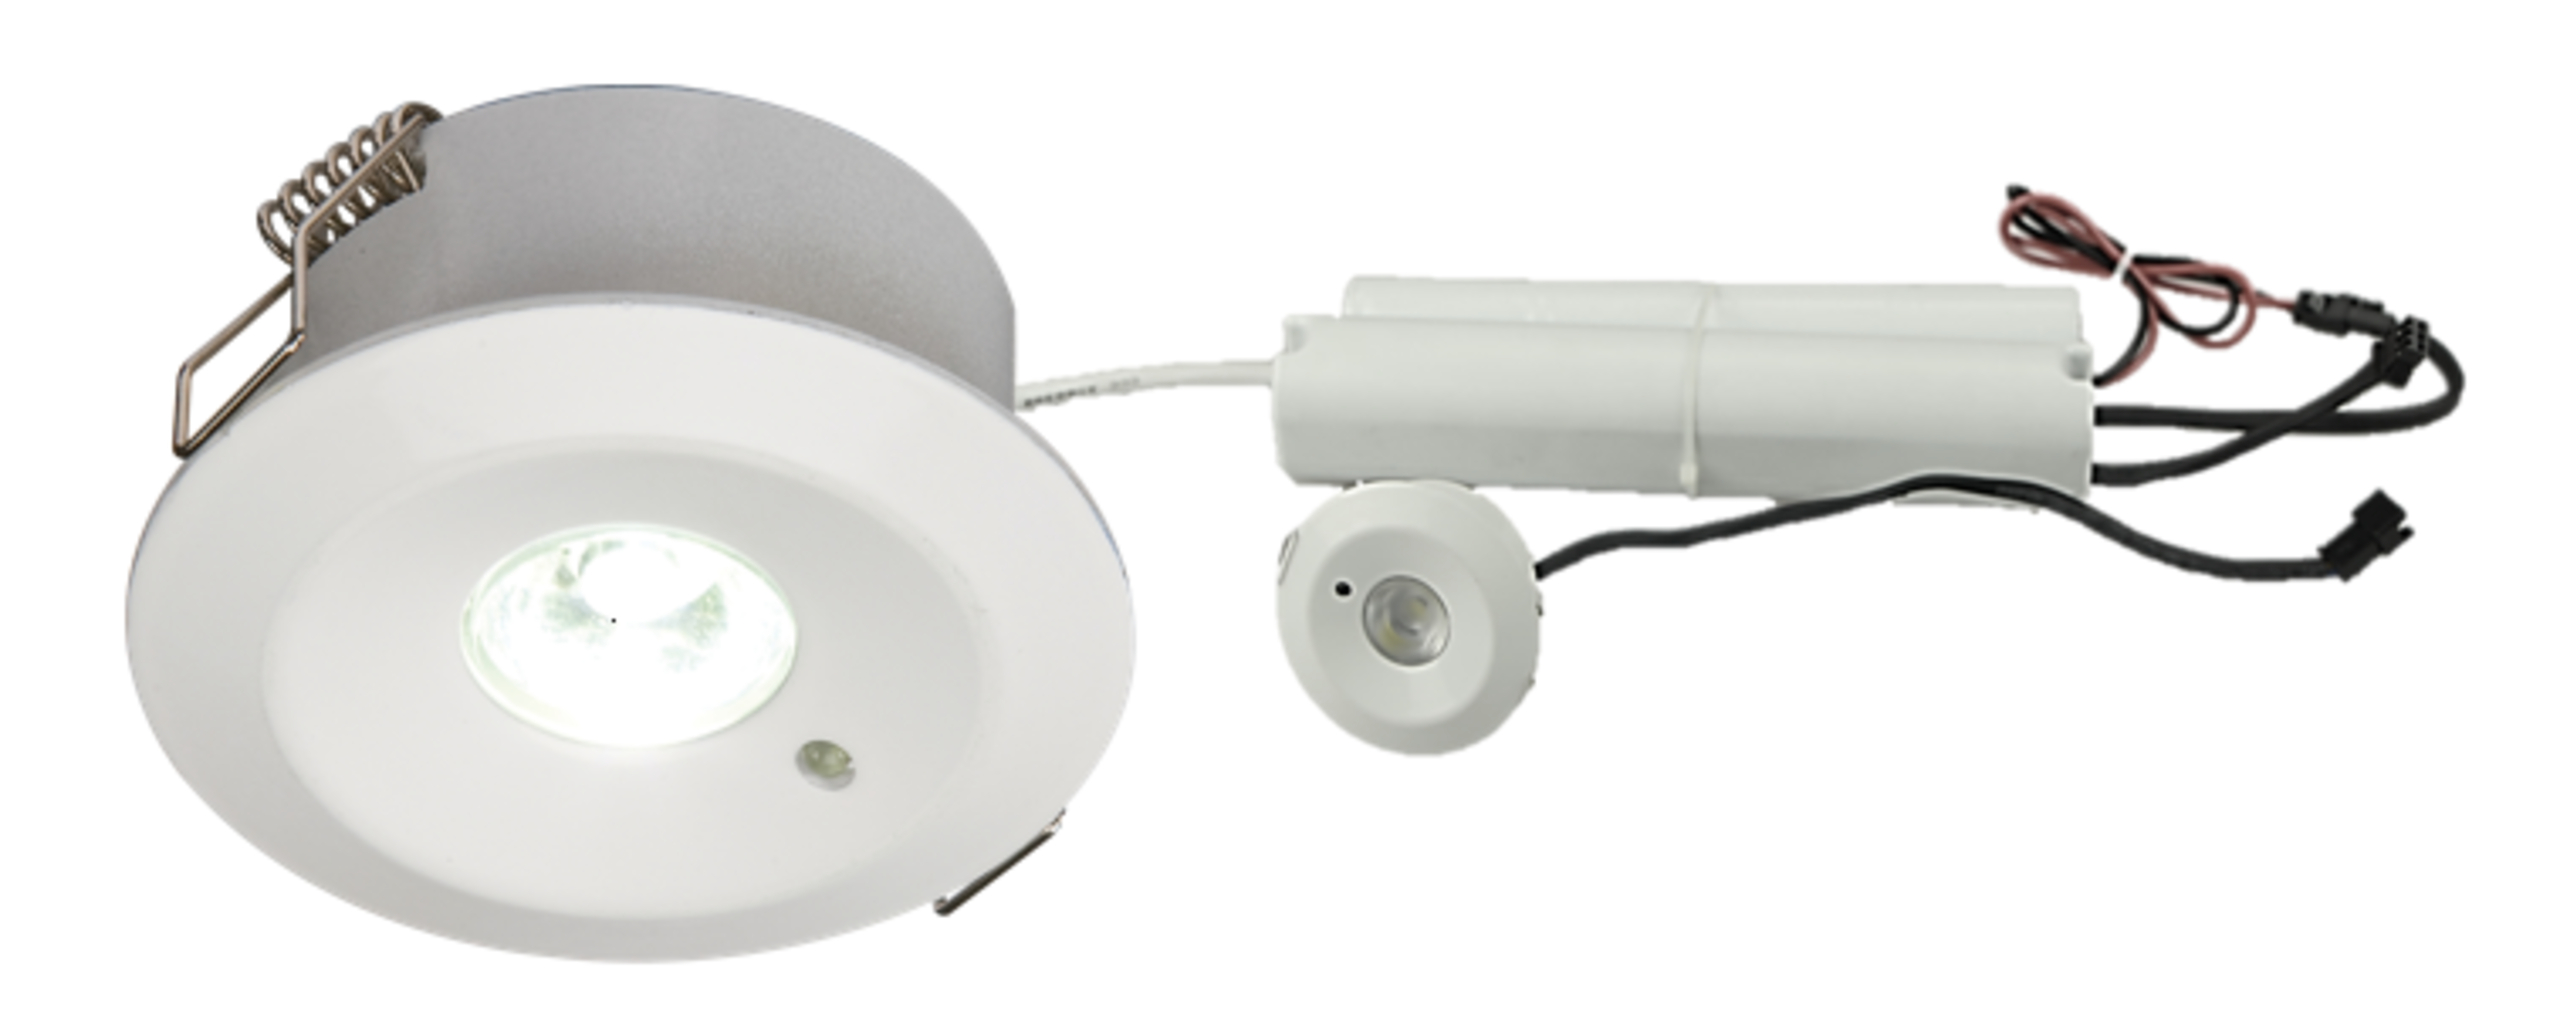 LED emergency lighting kit